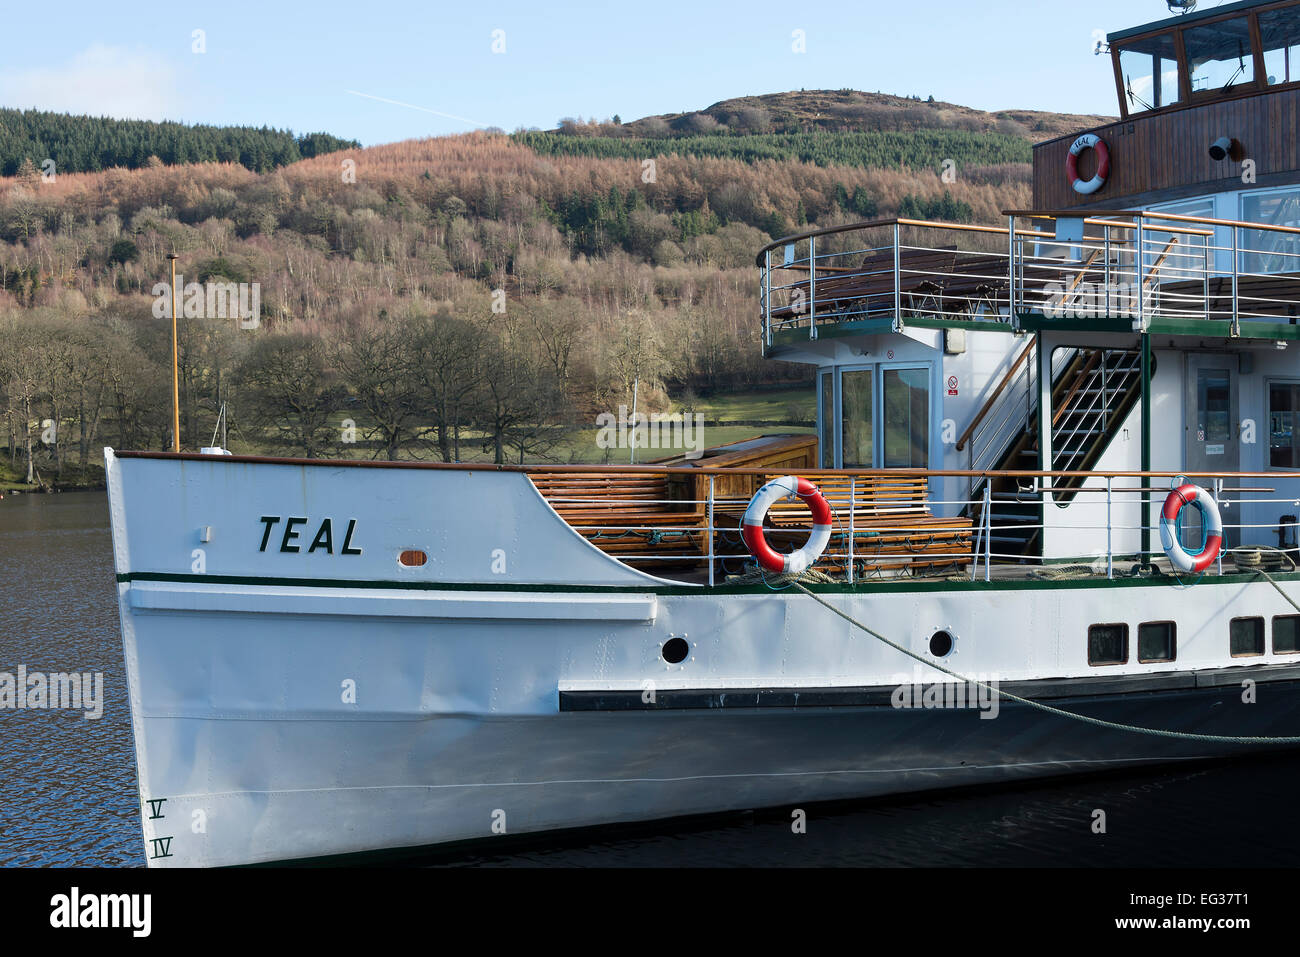 The Passenger Steamship Teal Moored at Quayside at Lakeside on Lake Windermere Cumbria England United Kingdom UK - Stock Image